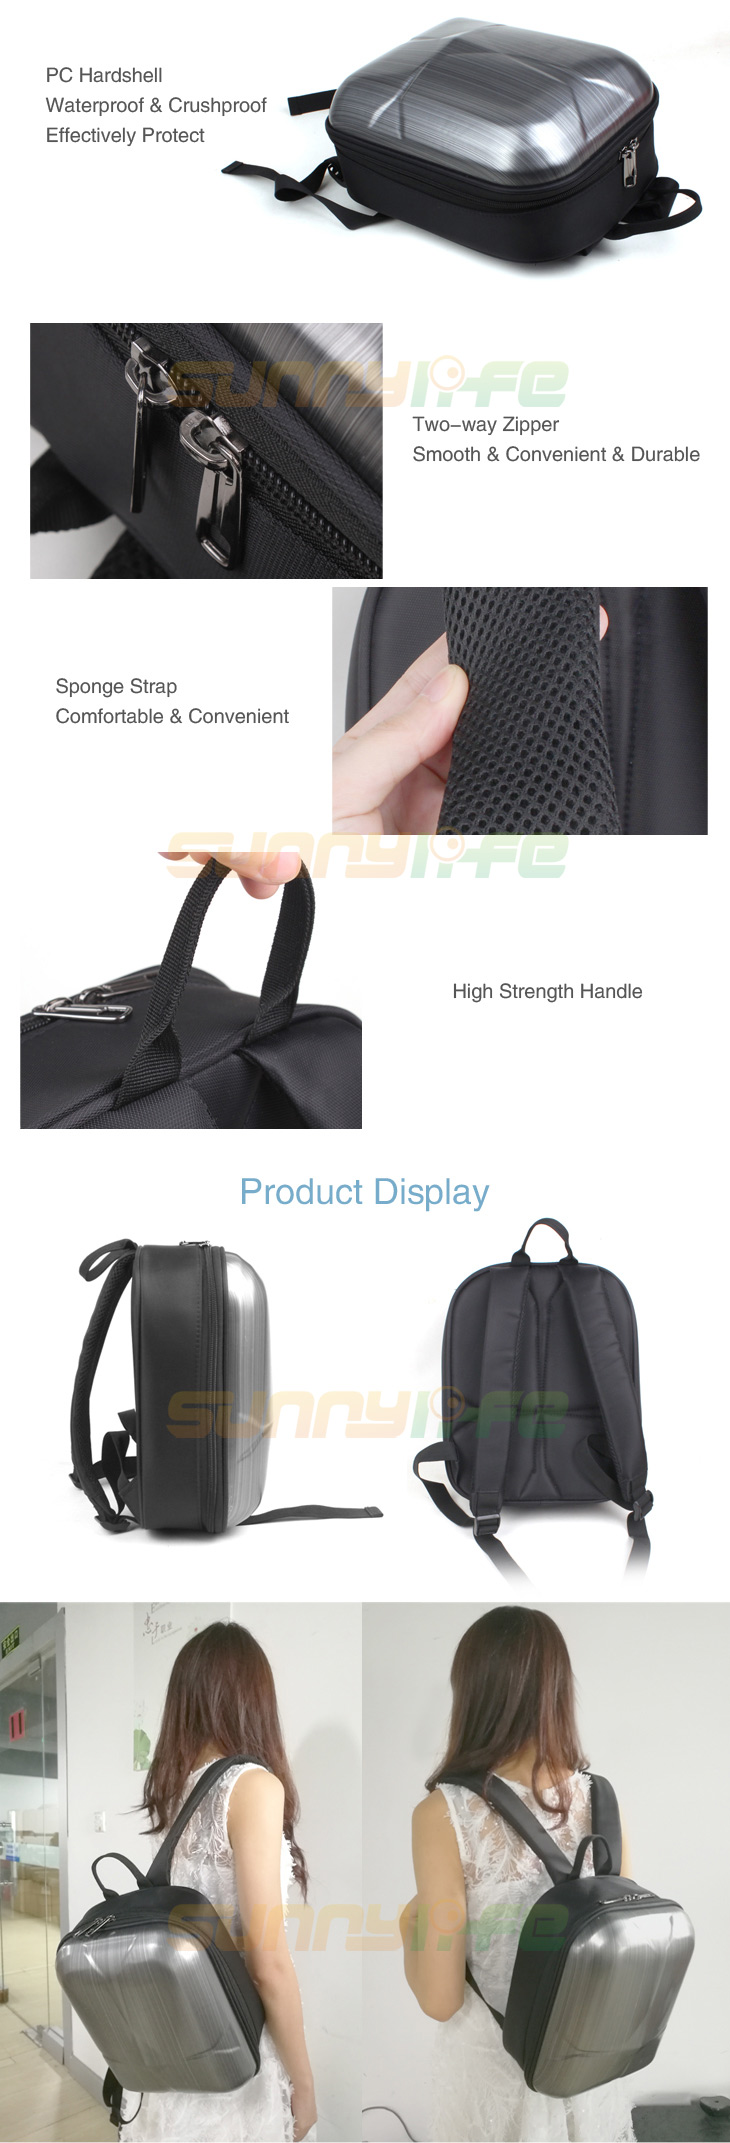 Mini Hardshell Backpack Waterproof Protective Shoulder Bag Storage Bag for DJI SPARK